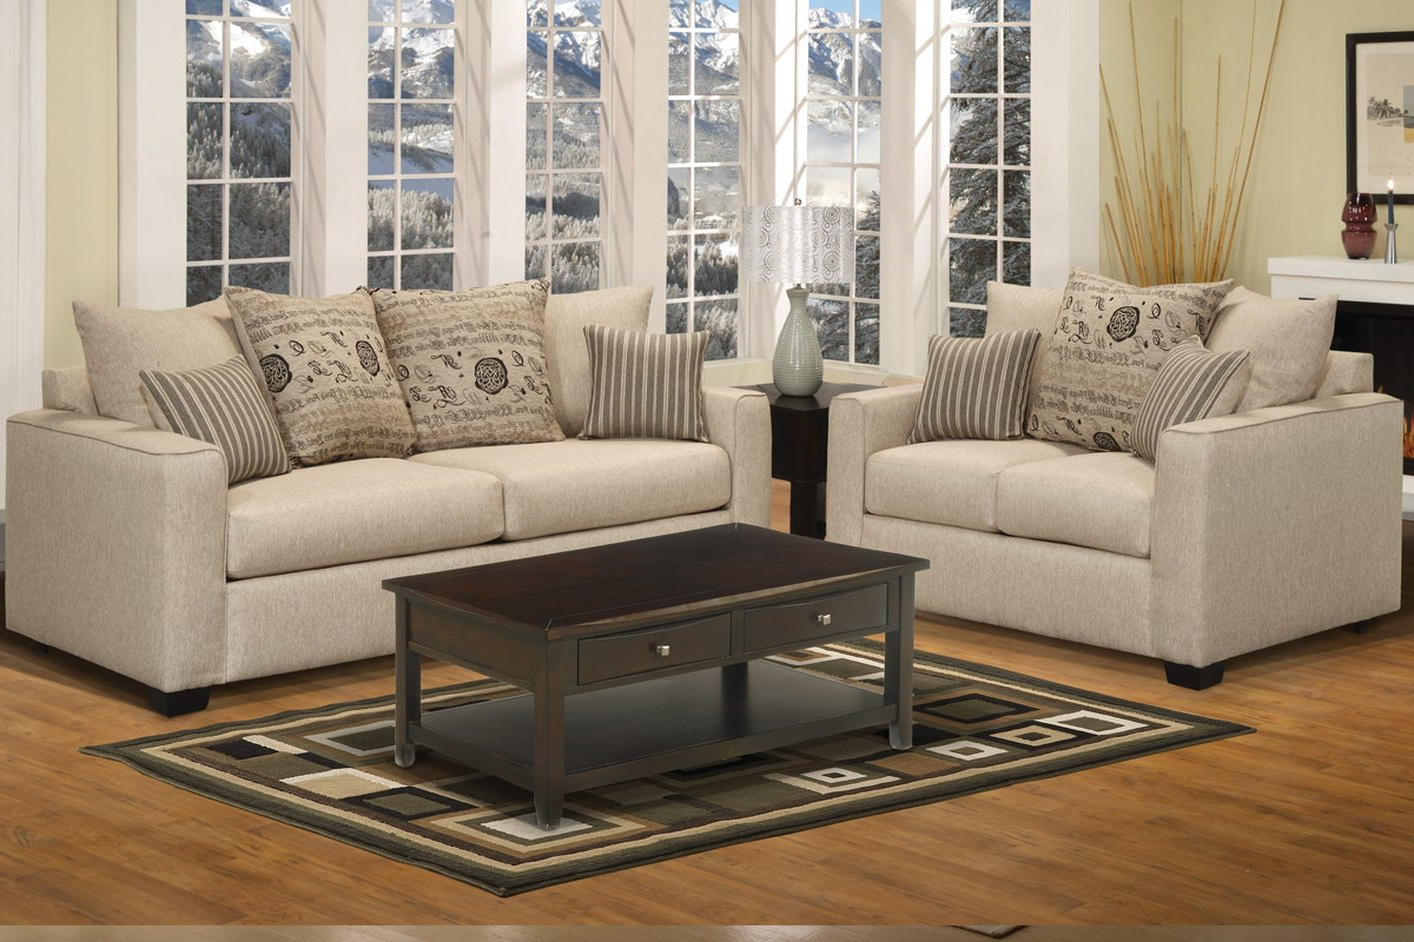 Sofa Loveseat And Chairs Within Fashionable Sofa & Loveseat Set – Steal A Sofa Furniture Outlet Los Angeles Ca (View 17 of 20)